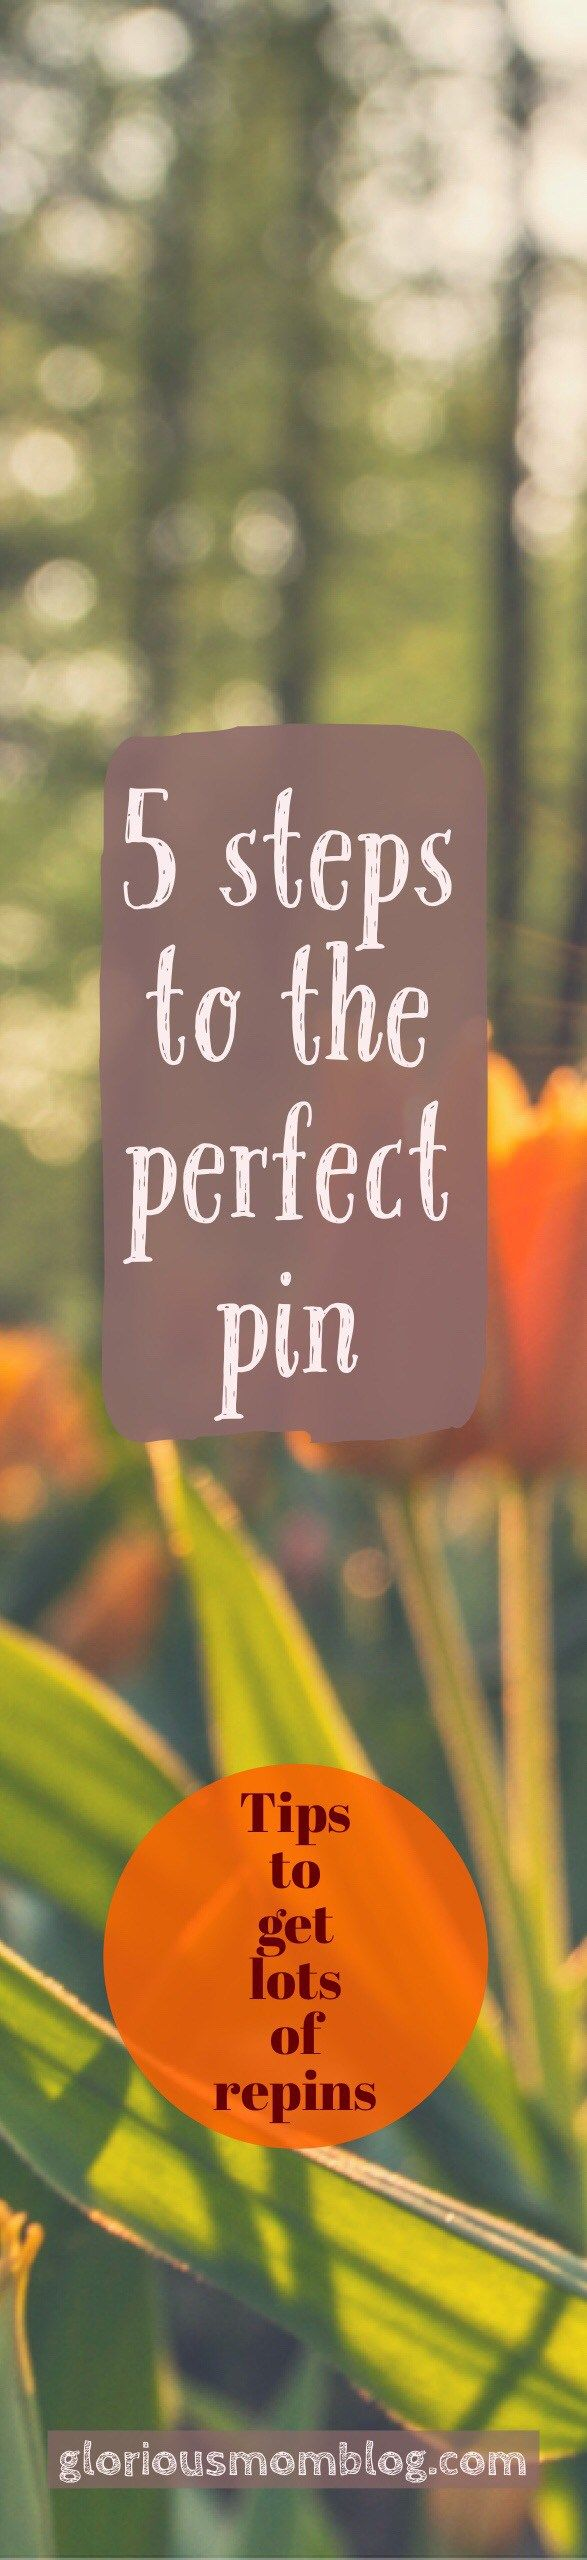 5 steps to the perfect pin: Blog traffic not where you want it to be? Check out my tips to get more repins. See the list at gloriousmomblog.com.